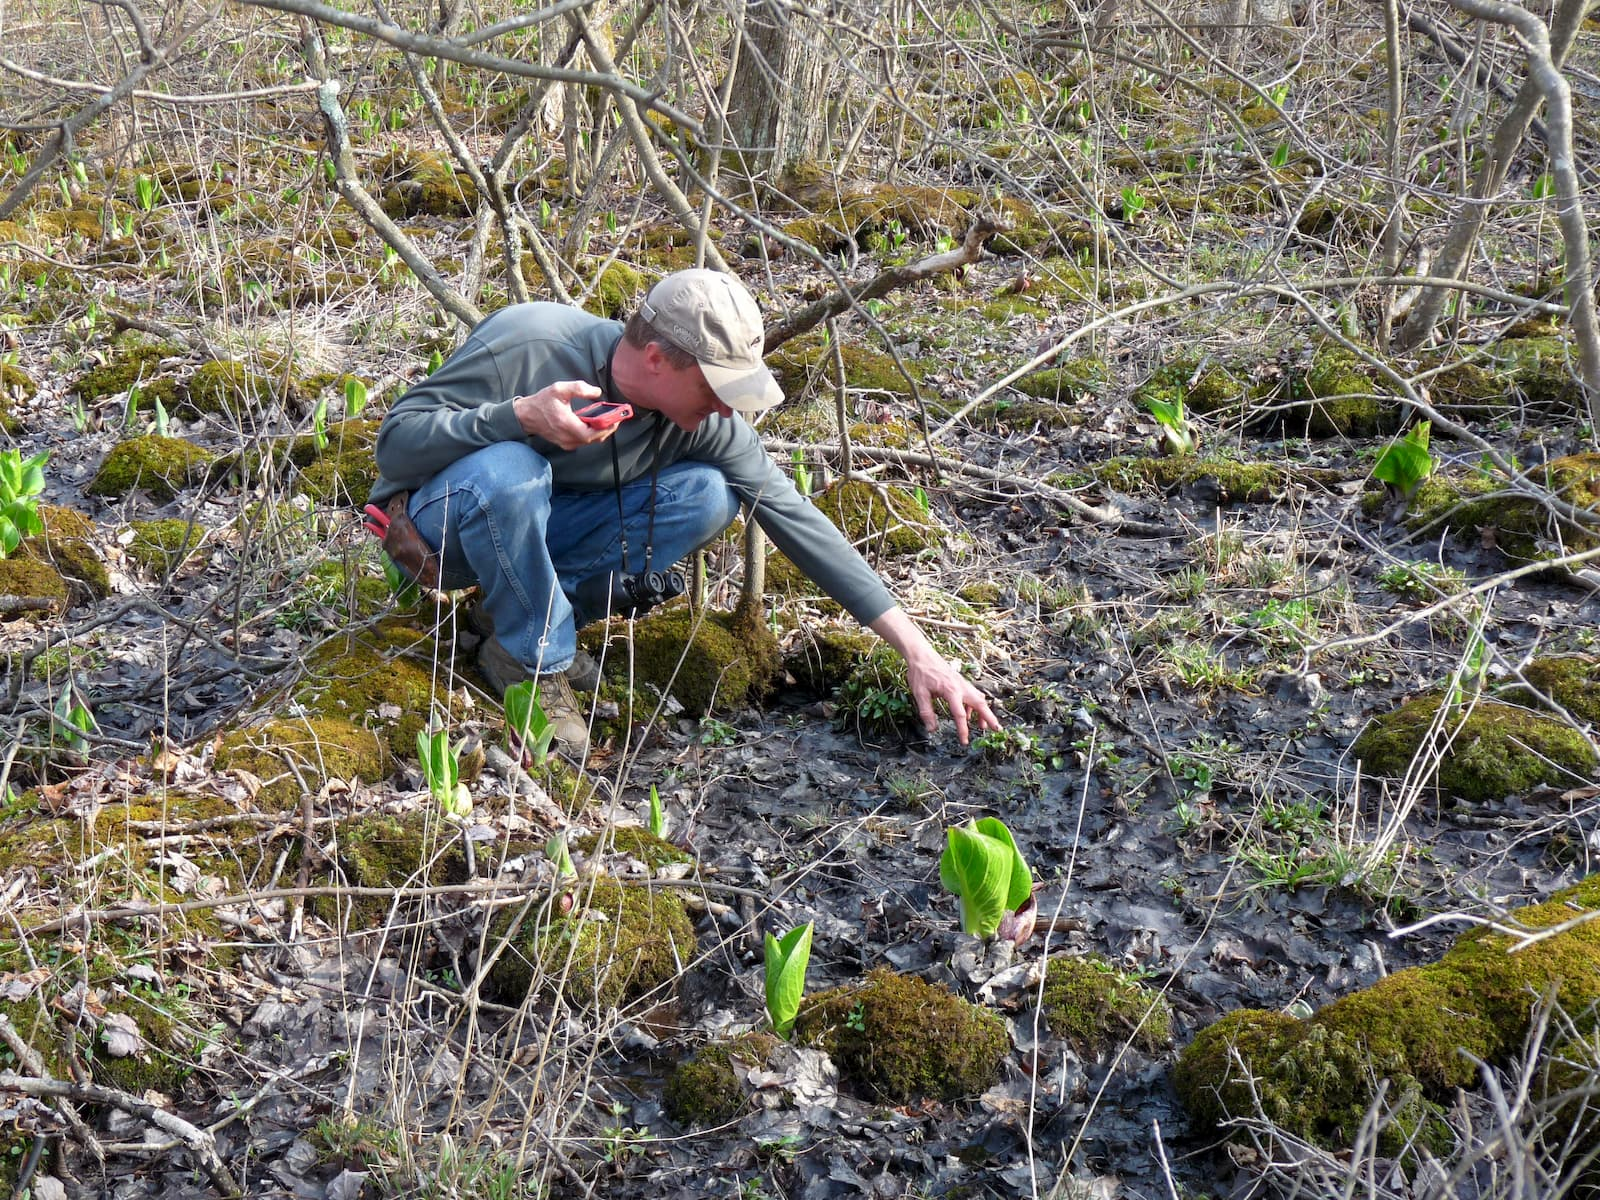 Forest monitoring and observation